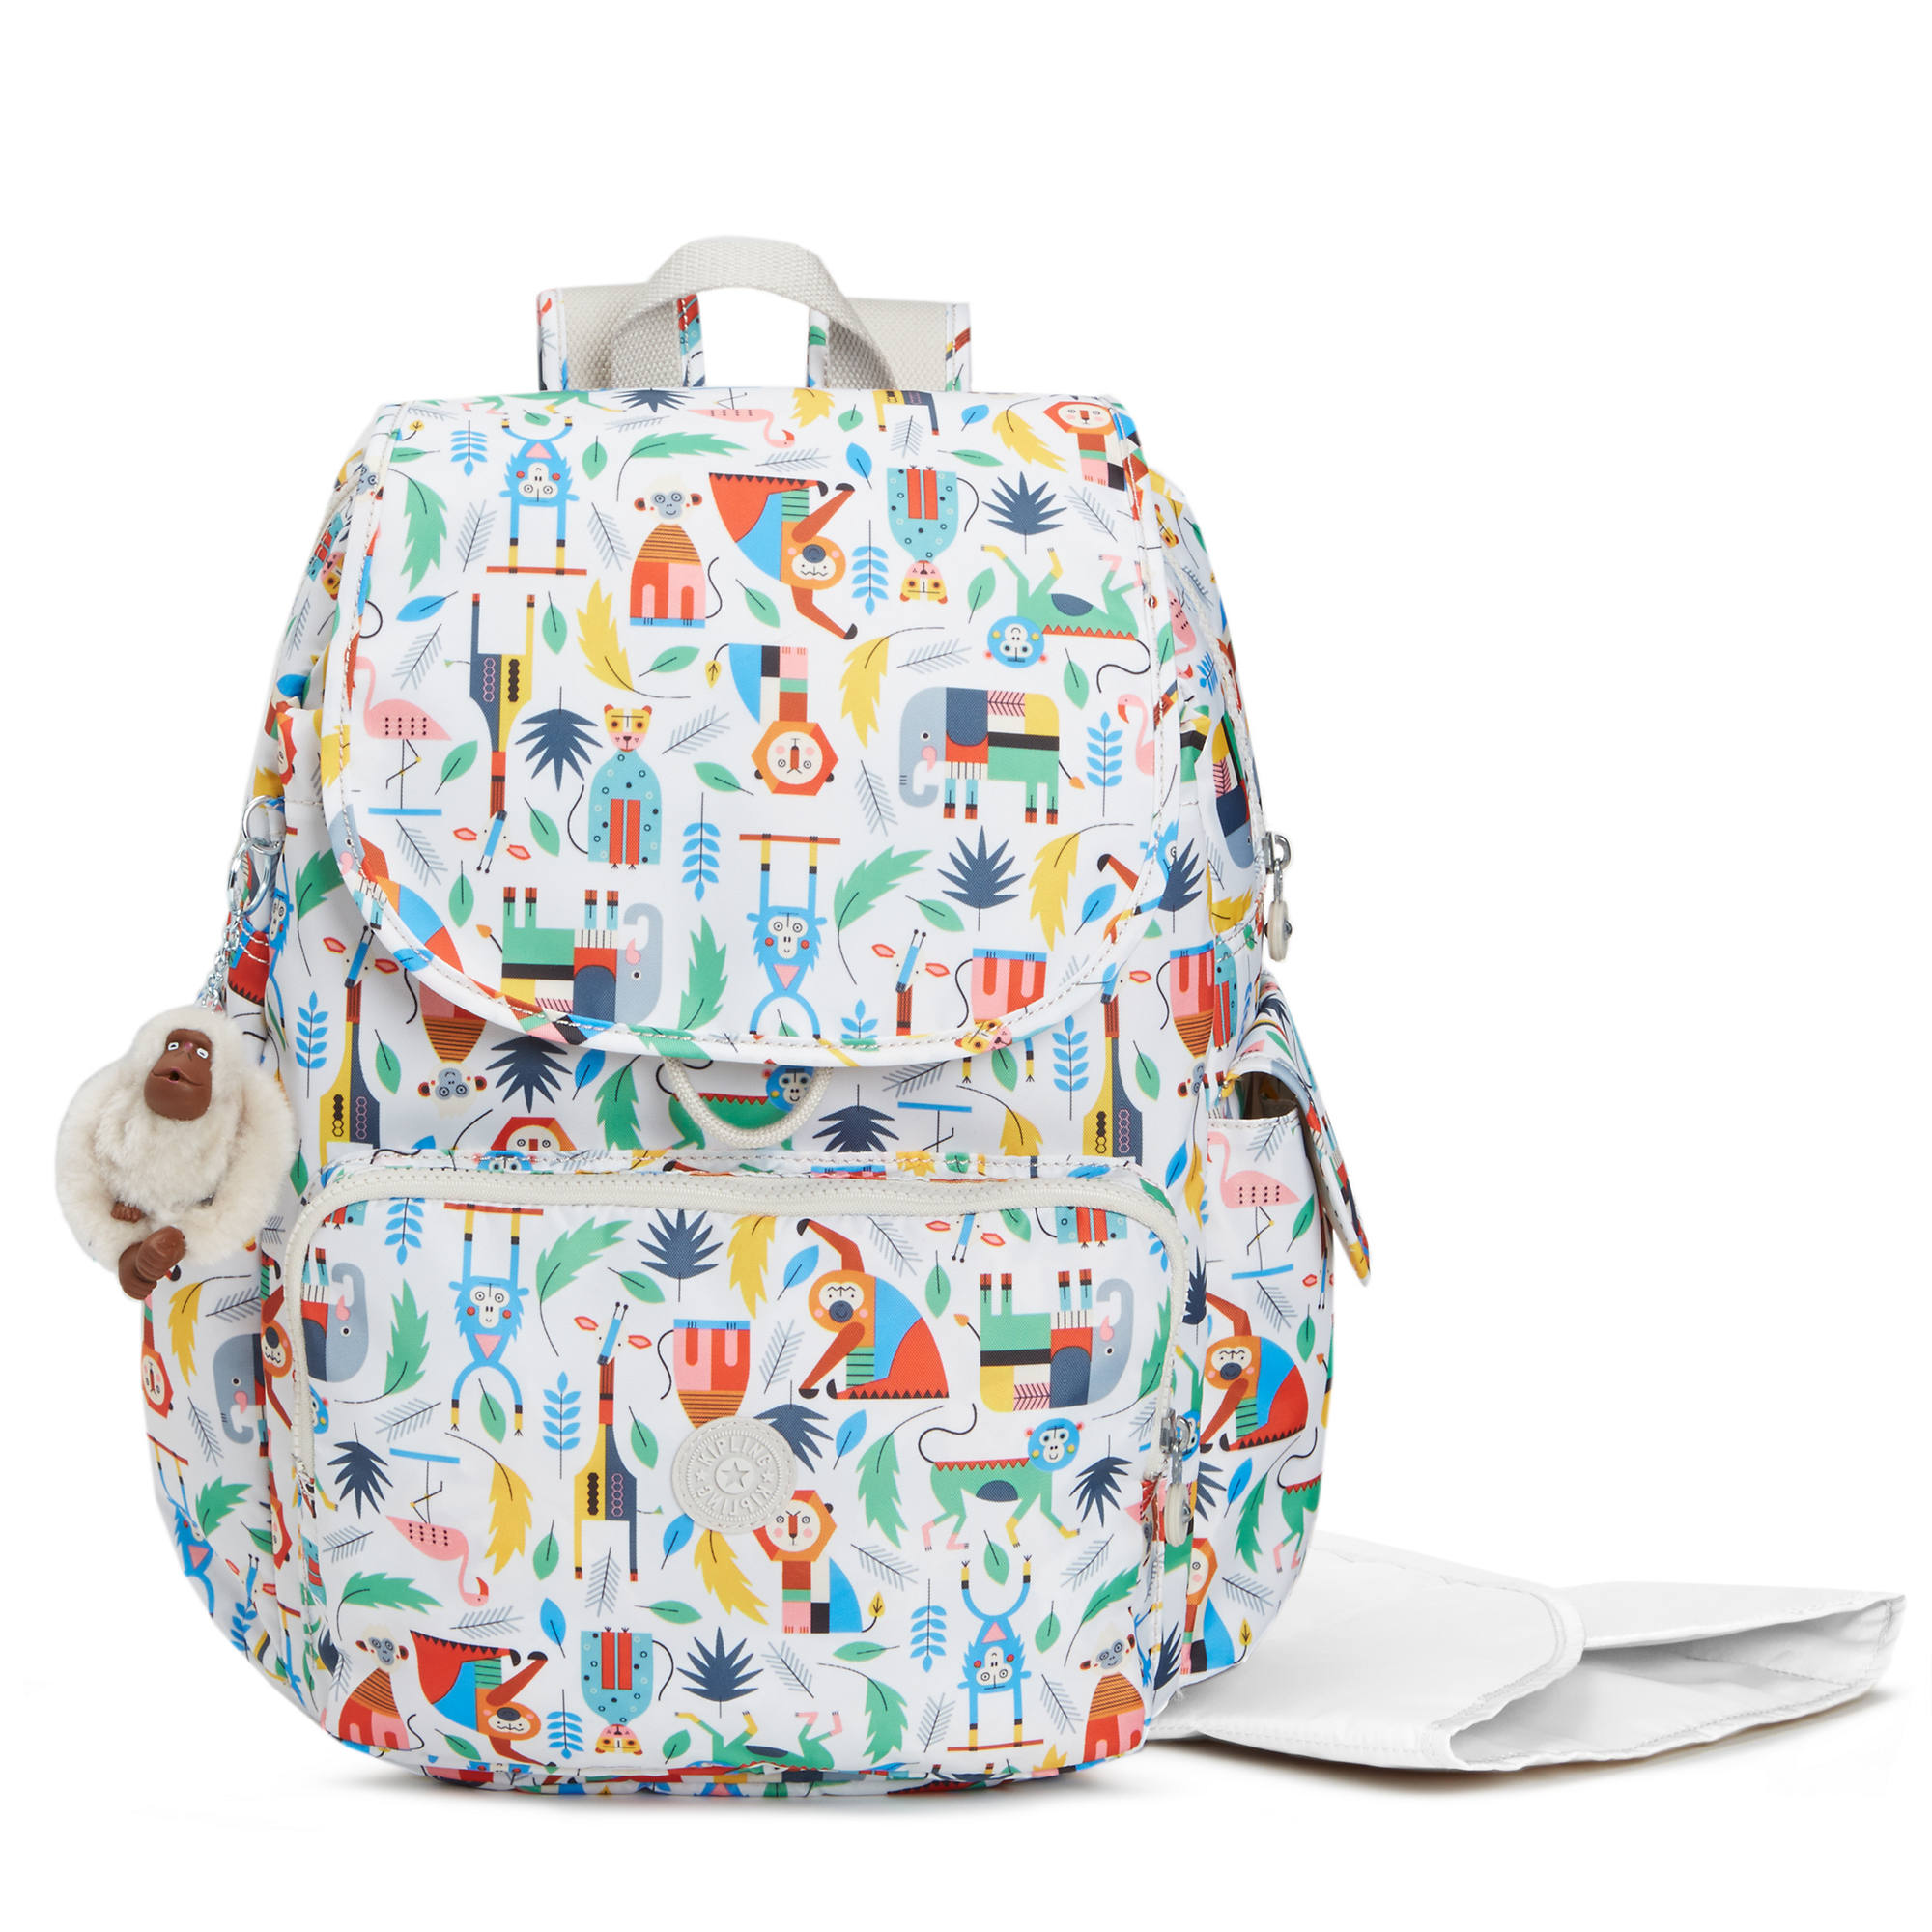 Baby Printed Backpack Diaper Bag Bundle Of Love Large